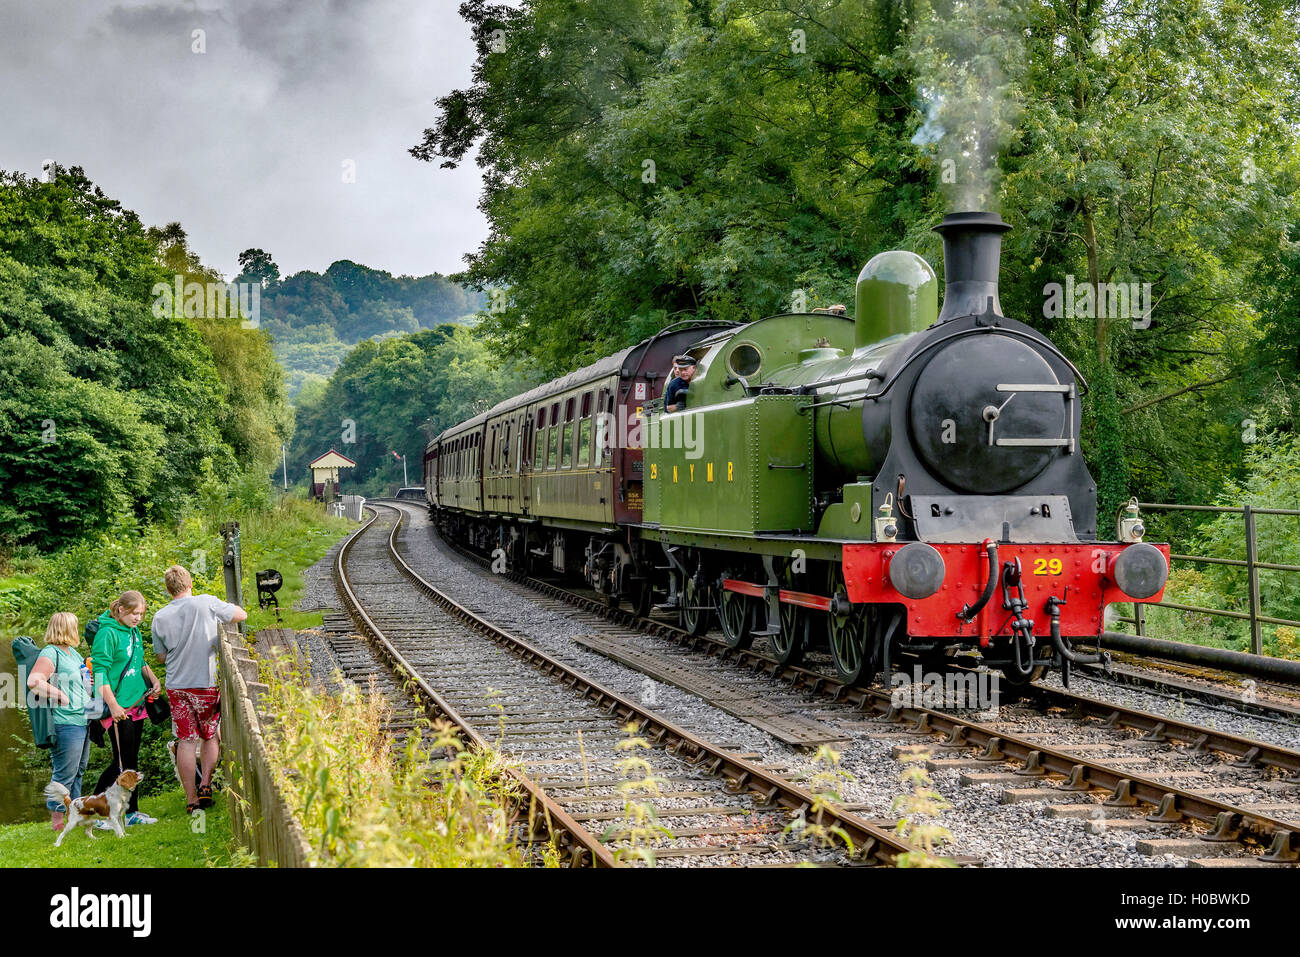 NYMR North Yorkshire Moors Railway Lambton tank engine Mnumber 29 pictured at Consall on the Churnet Valley Railway - Stock Image